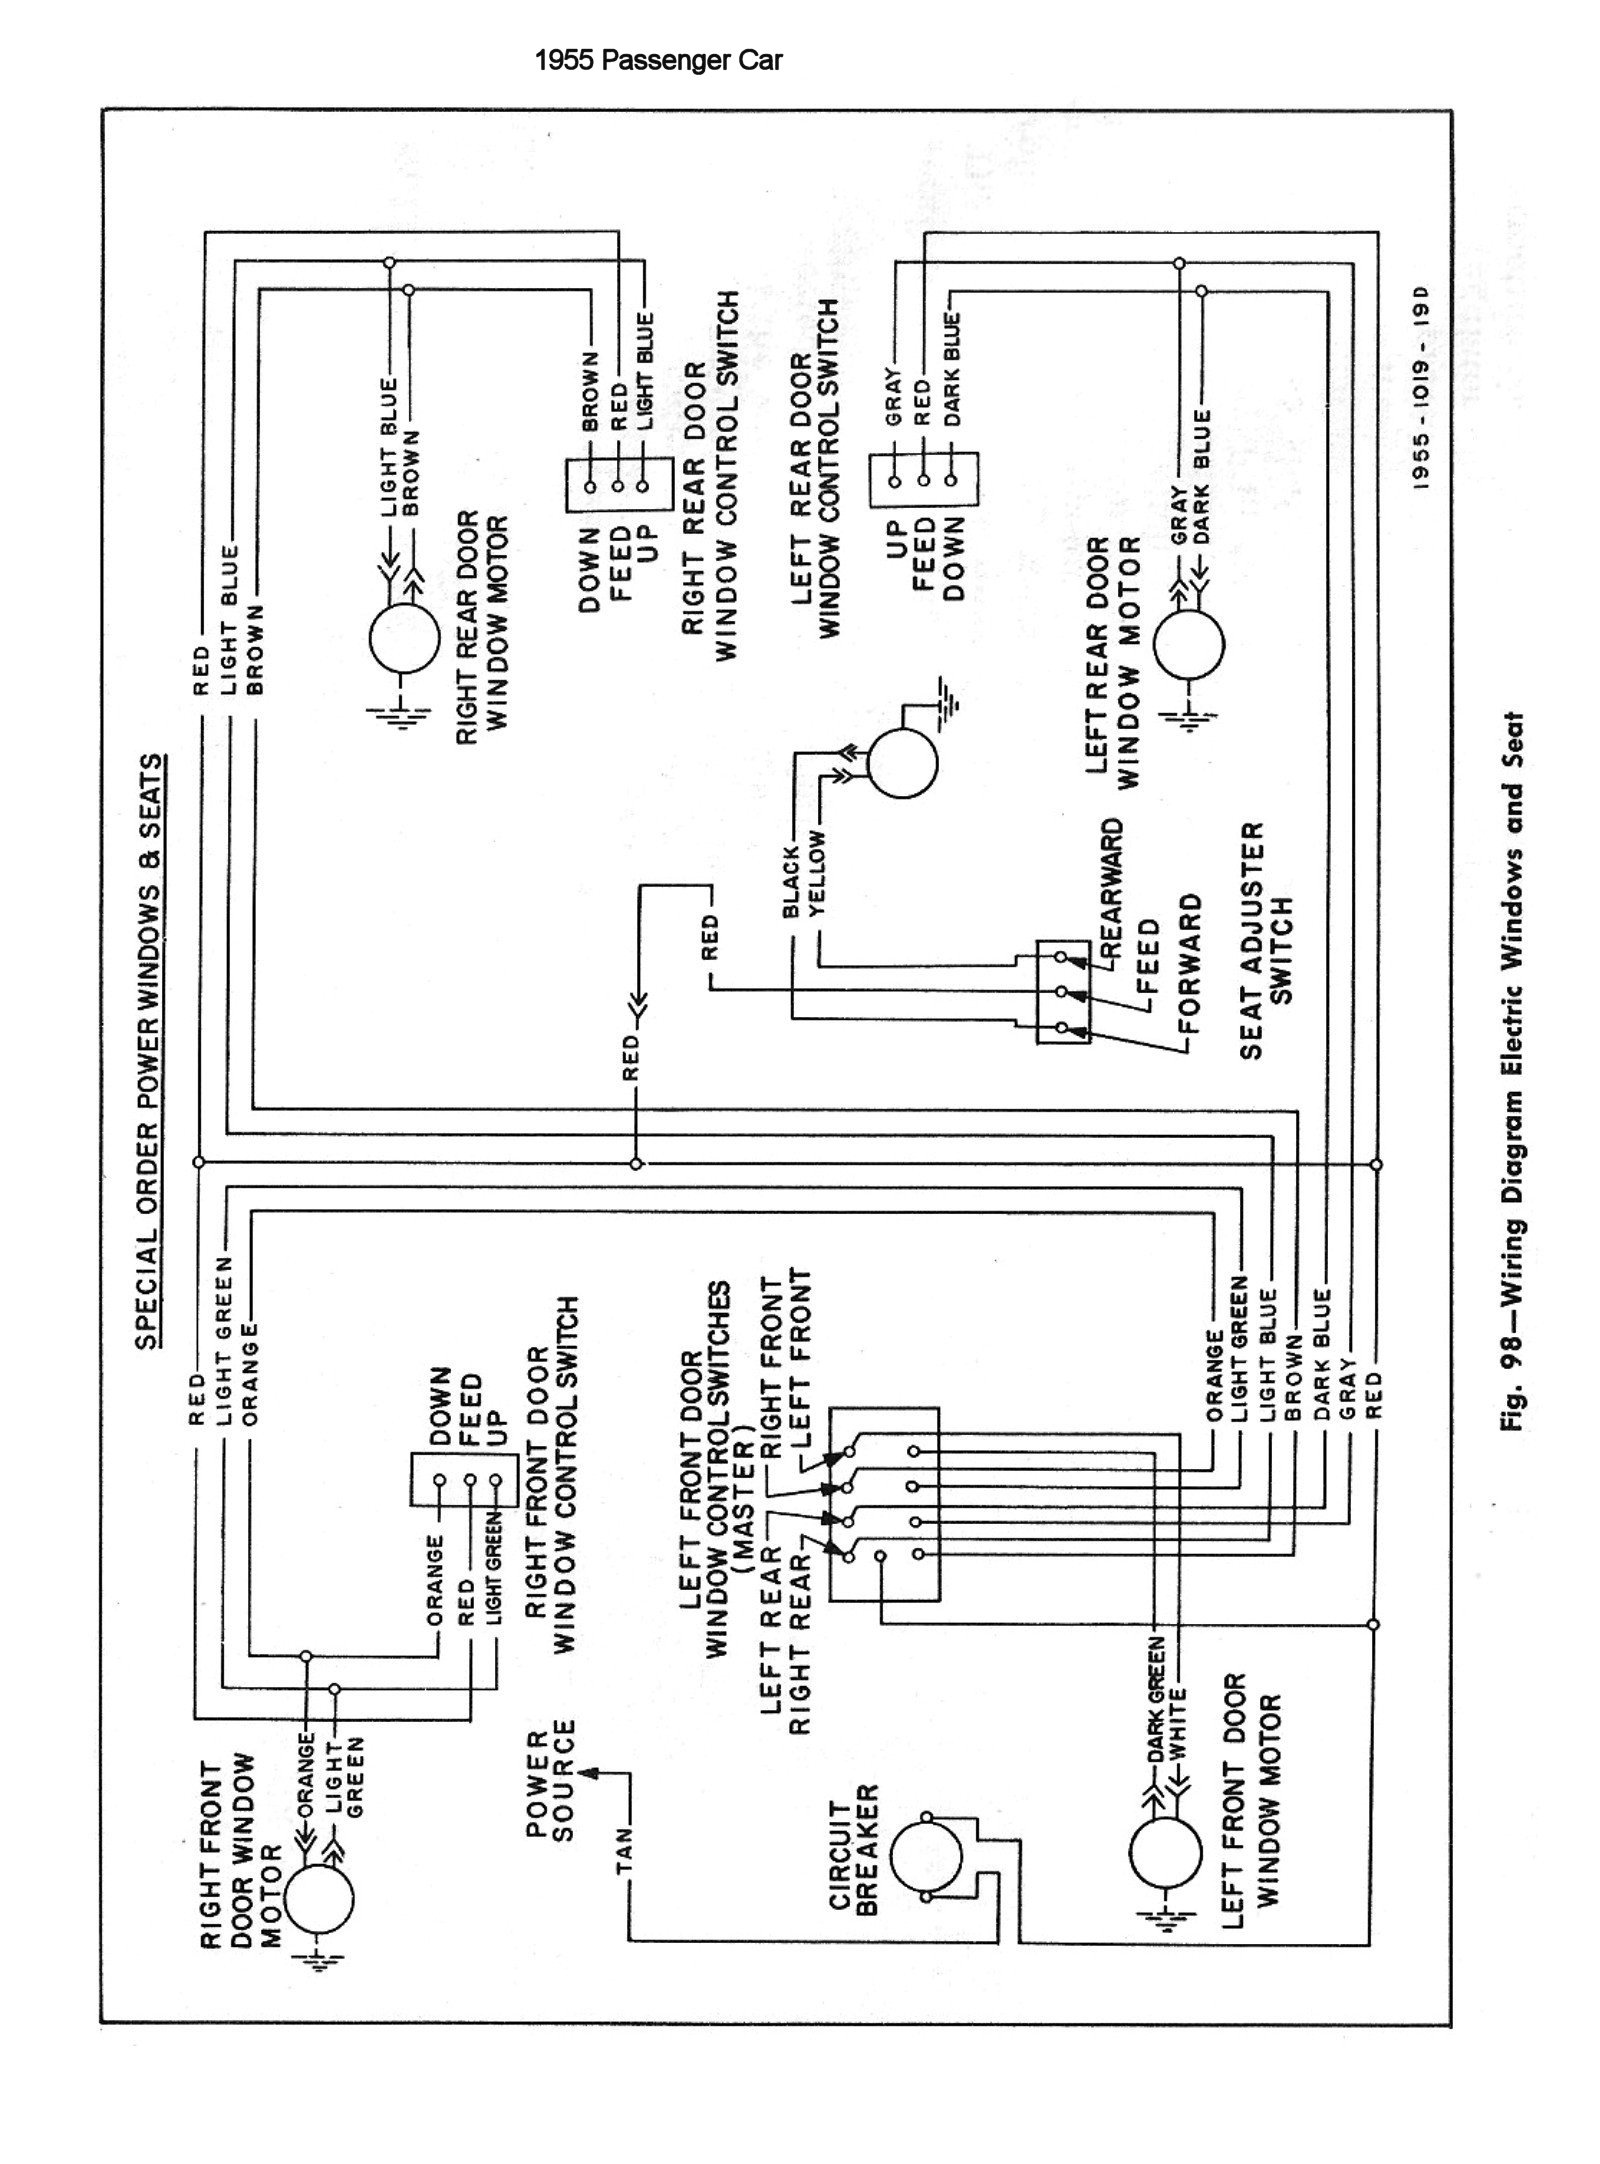 Chevy Wiring diagrams on chevy turn signal switch schematic, turn signal flasher wiring diagram, chevy neutral safety switch wiring,